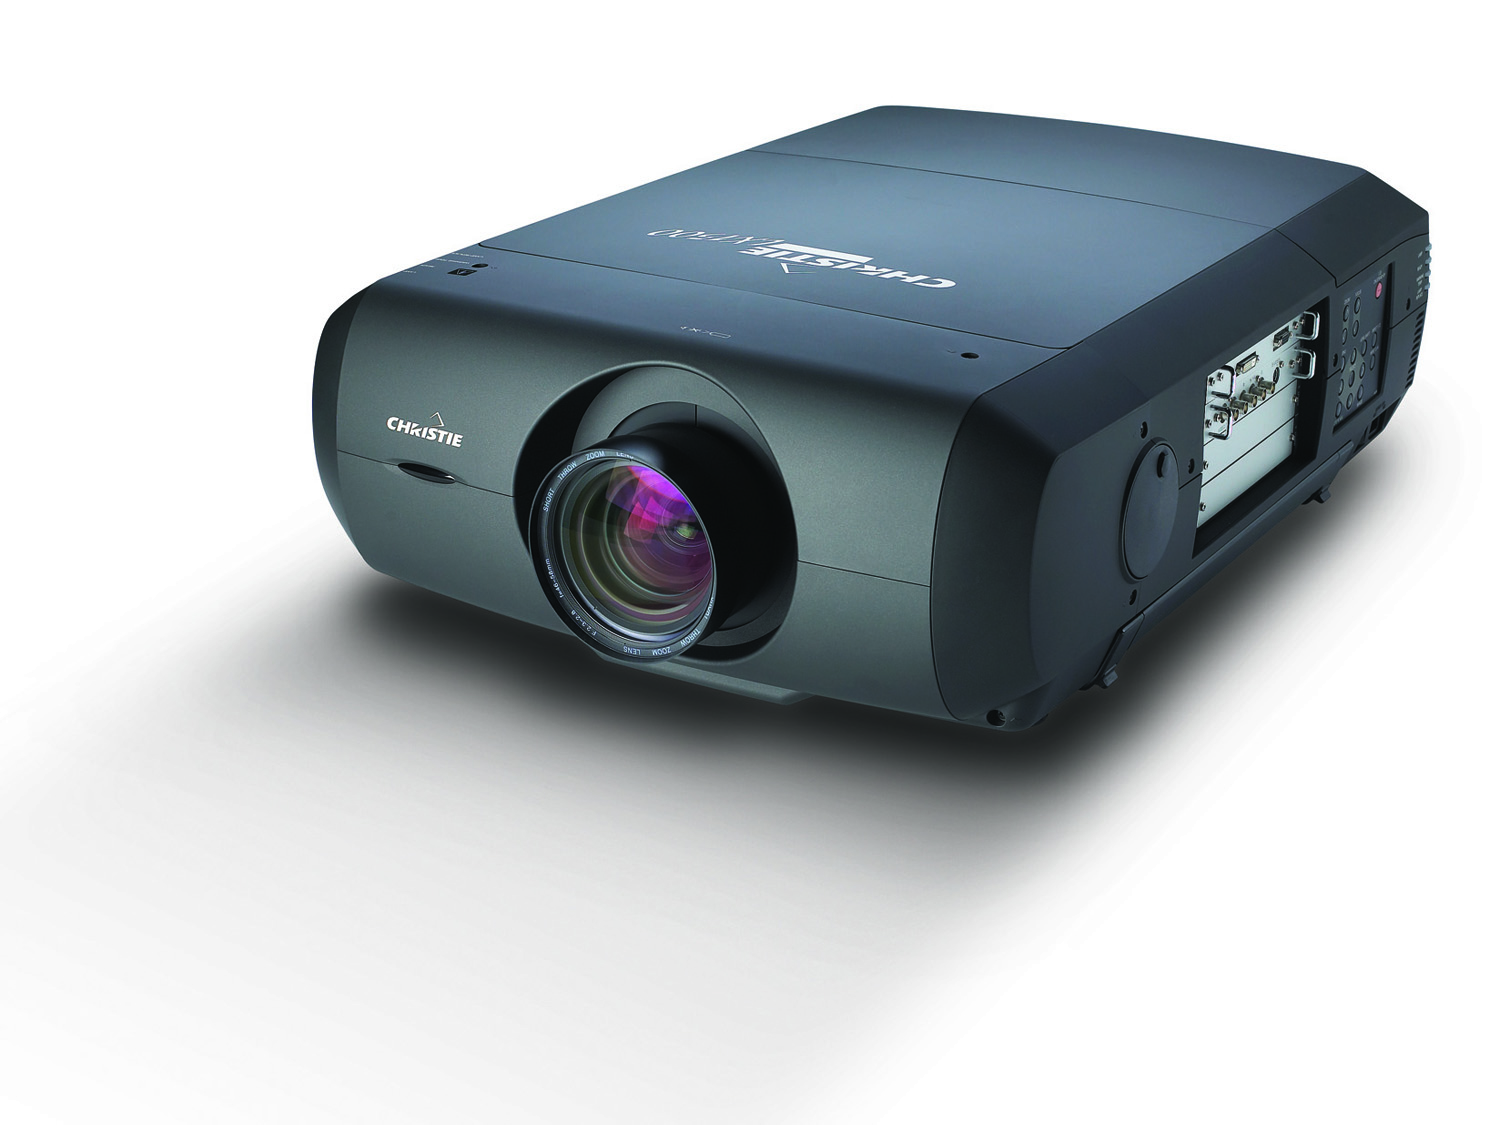 /globalassets/.catalog/products/images/christie-lx1500/gallery/christie-lx1500-lcd-projector-highrightpr.jpg